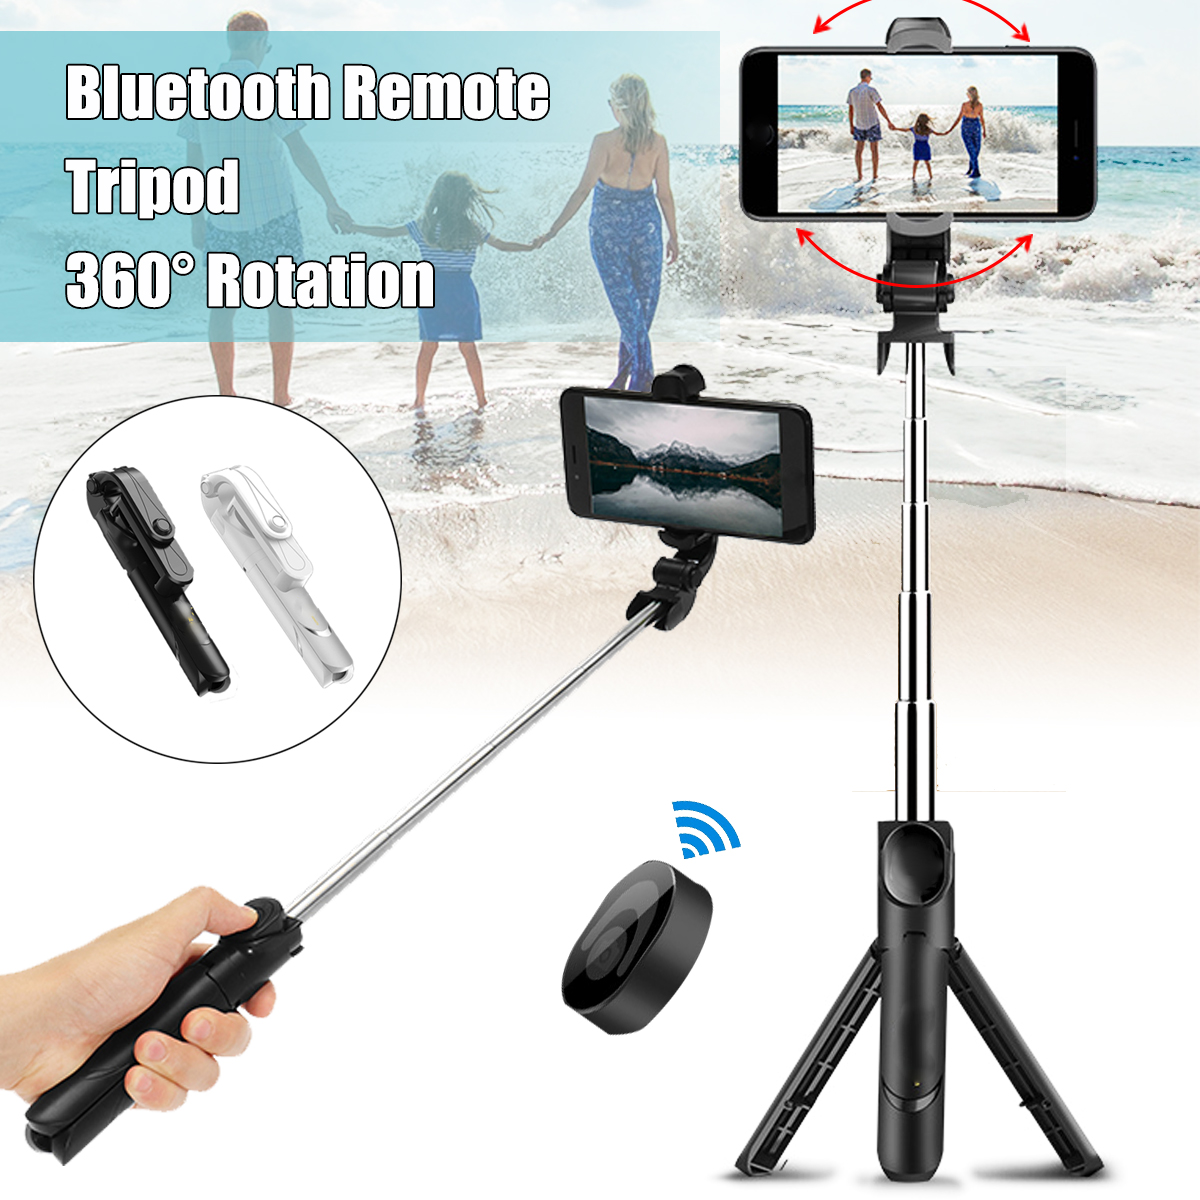 Black 3-IN-1 Extendable Selfie Stick 7.5''-26.8'' + Bluetooth Remote Control Shutter + Handheld Monopod Tripod Mount for iPhone & Android Universal Smartphone